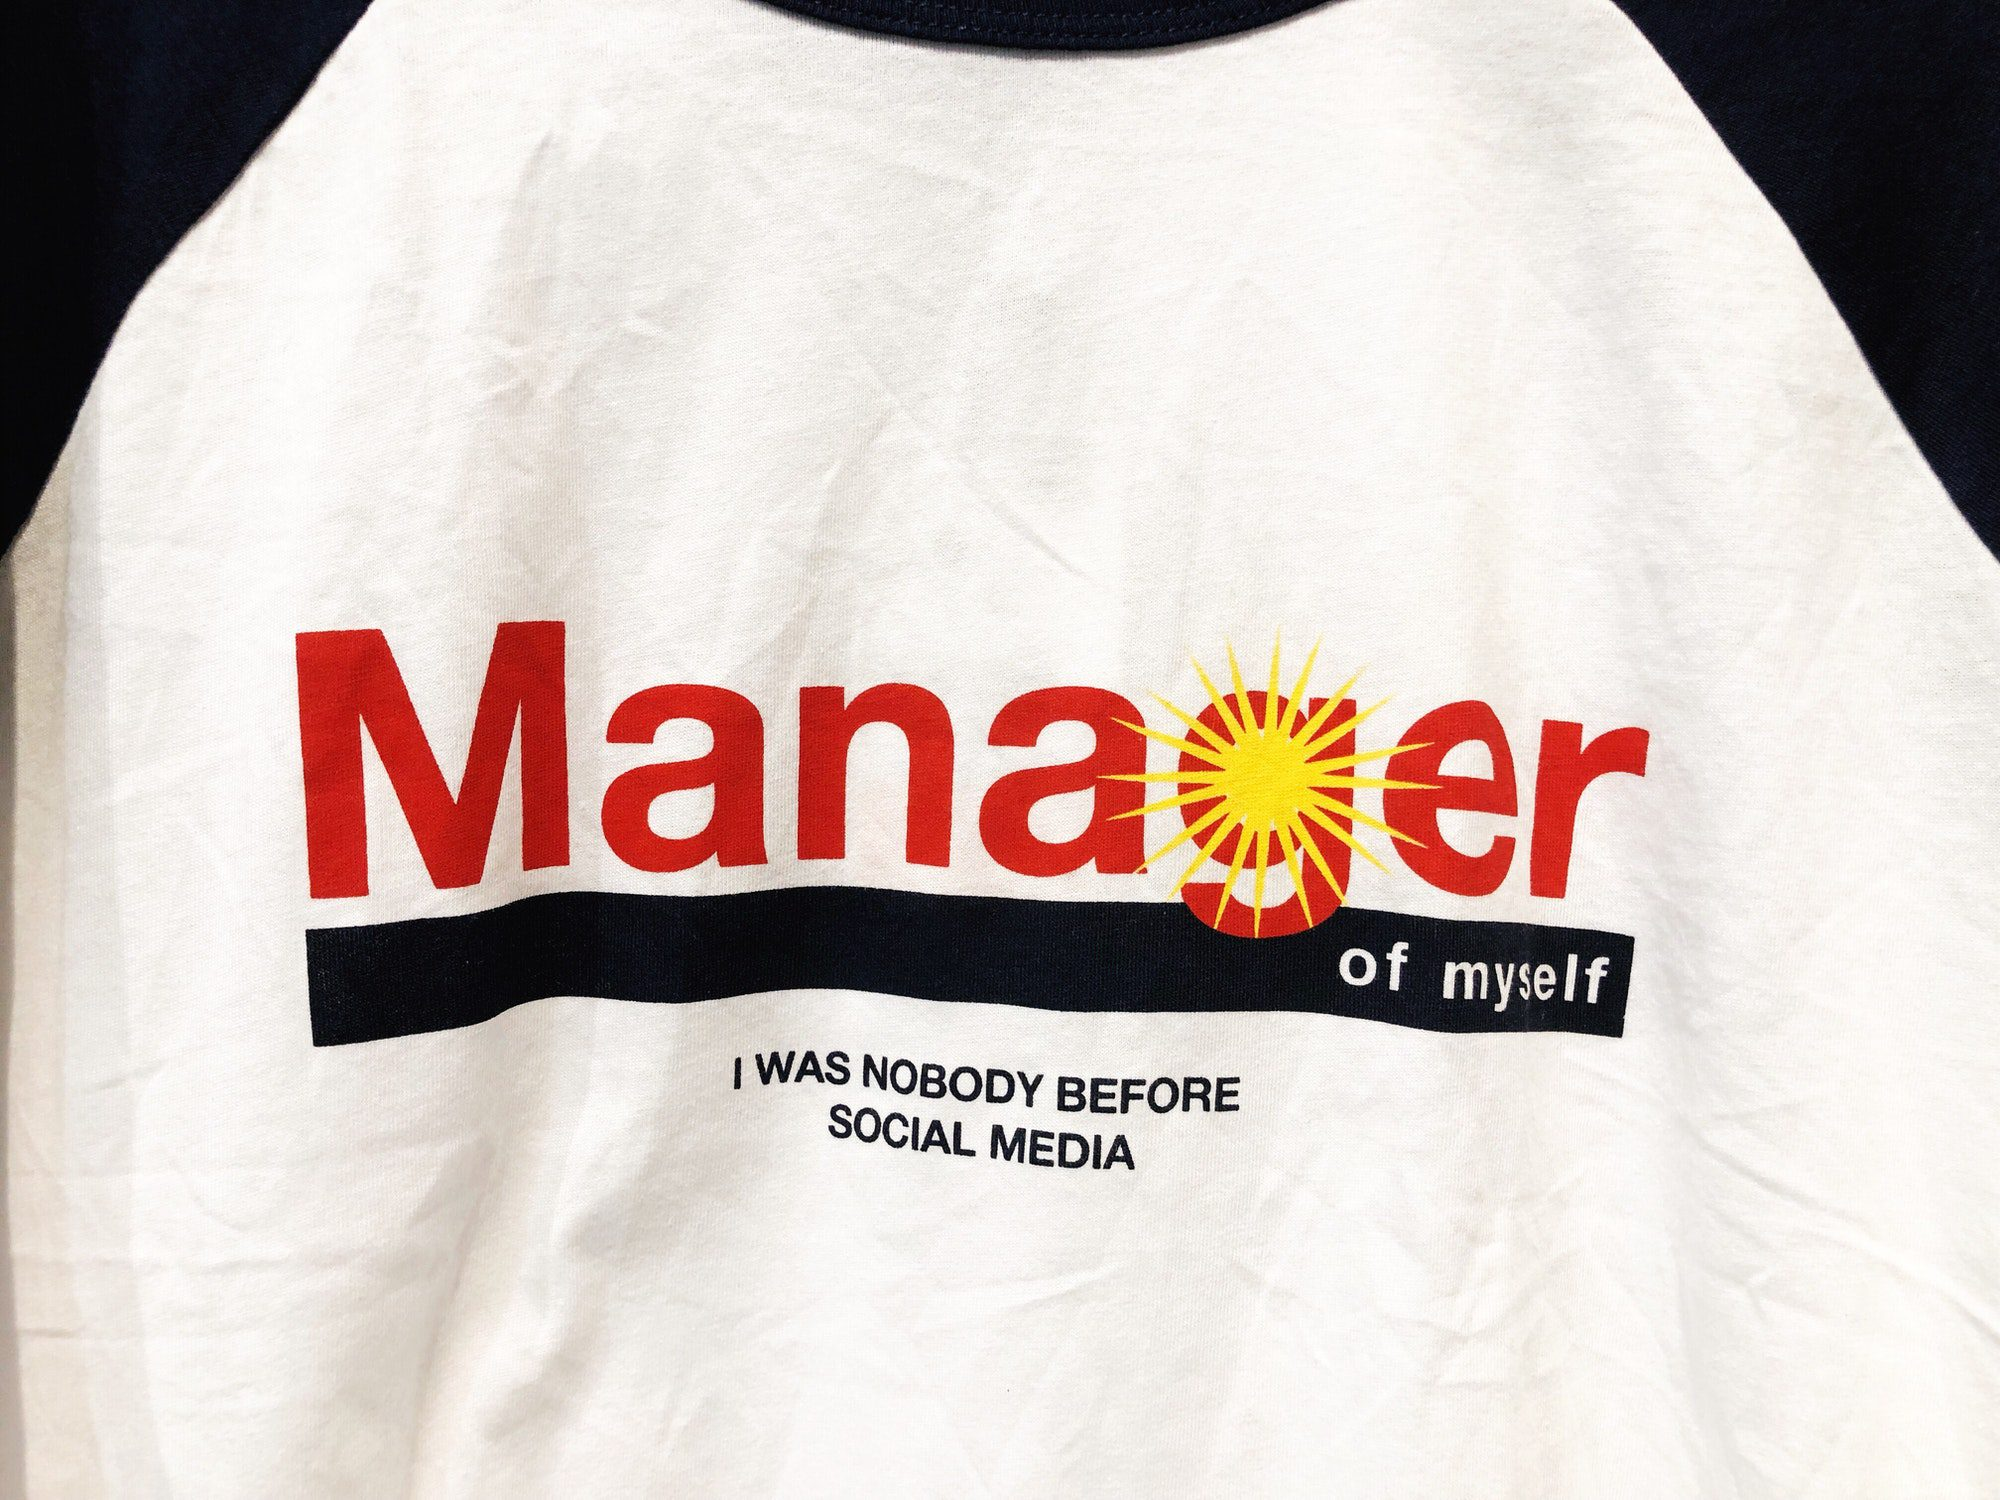 Manager of myself